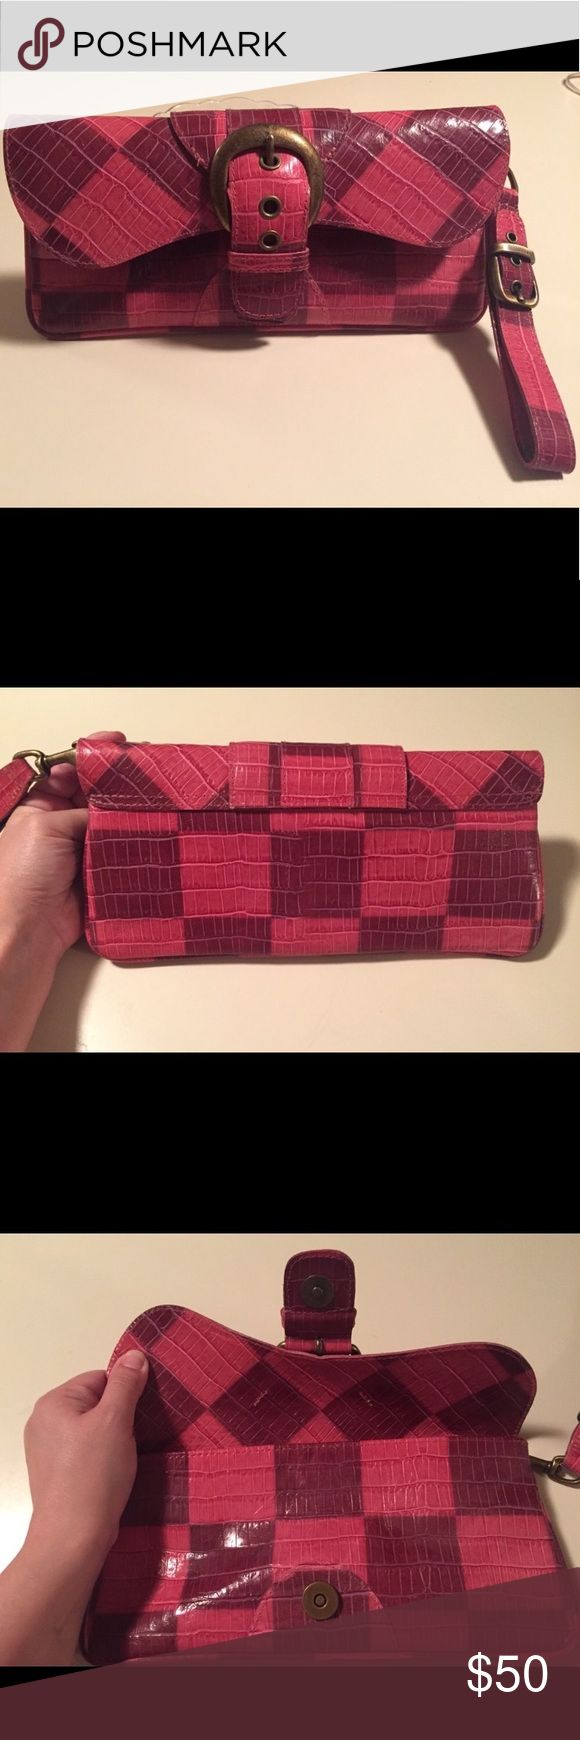 Isabella Fiore all leather wristlet Brand new Isabella Fiore clutch with detachable wristlet has never been used! 10inches long and 5 inches tall, perfect to dress up or down. All leather and very study! Perfect brand new condition 😊 Isabella Fiore Bags Clutches & Wristlets